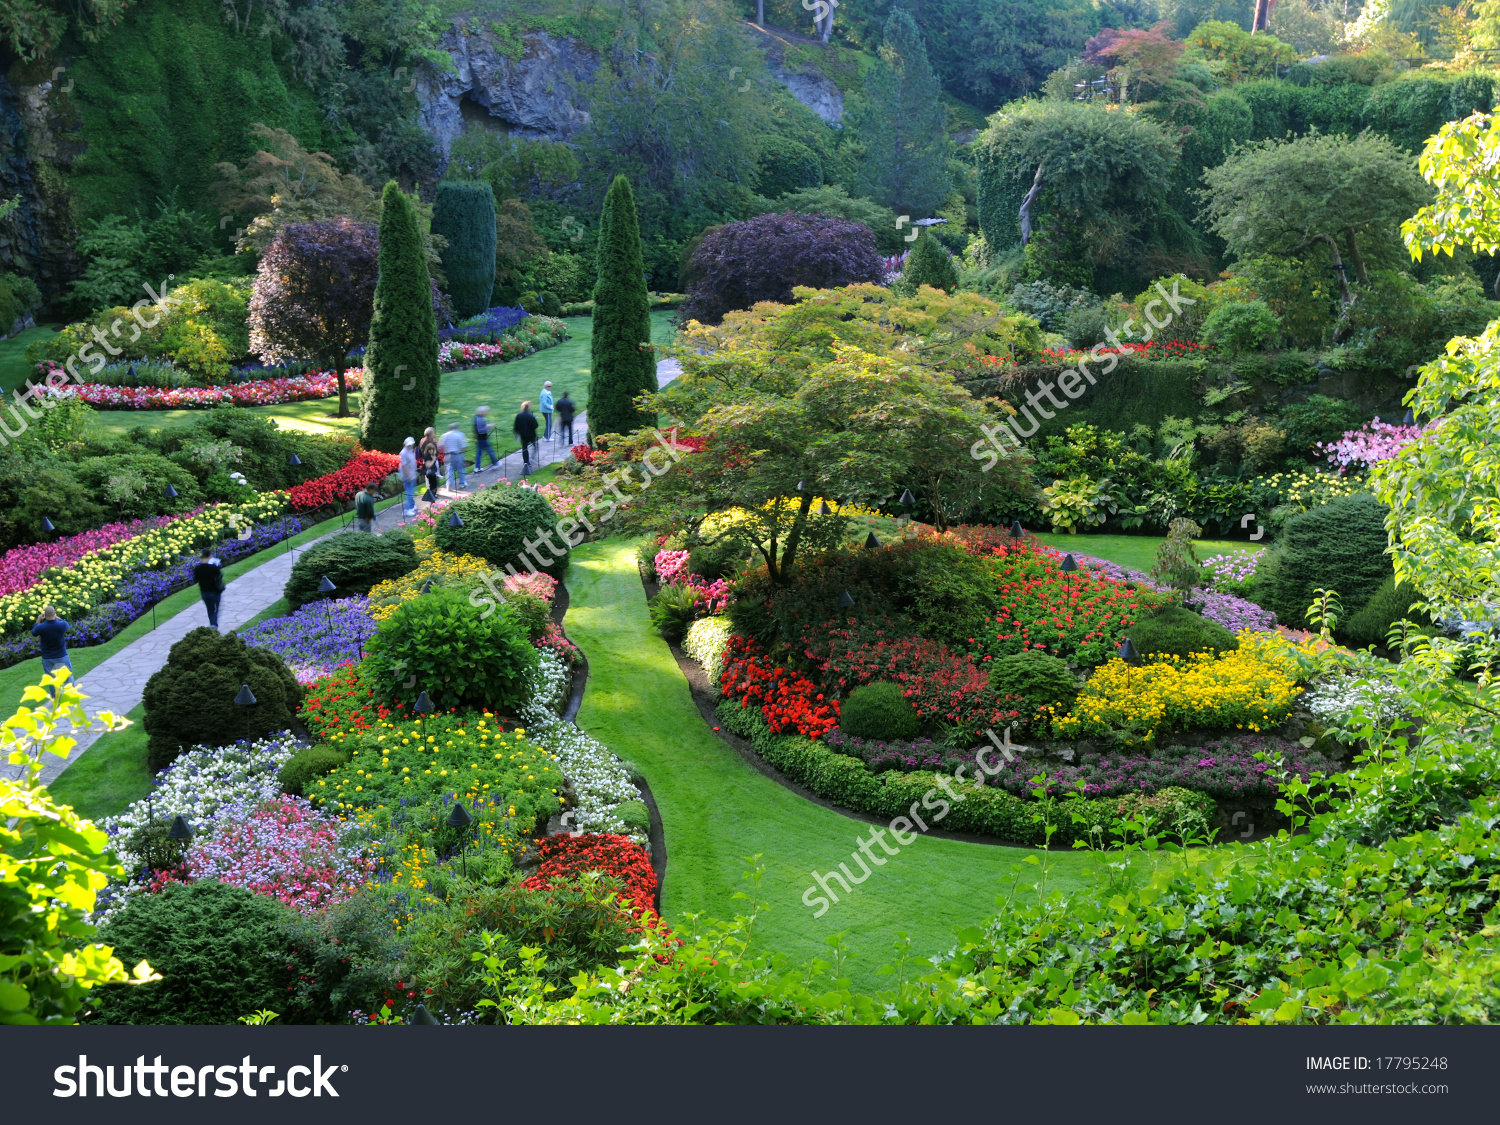 The Butchart Gardens, Victoria, Bc, Canada Stock Photo 17795248.